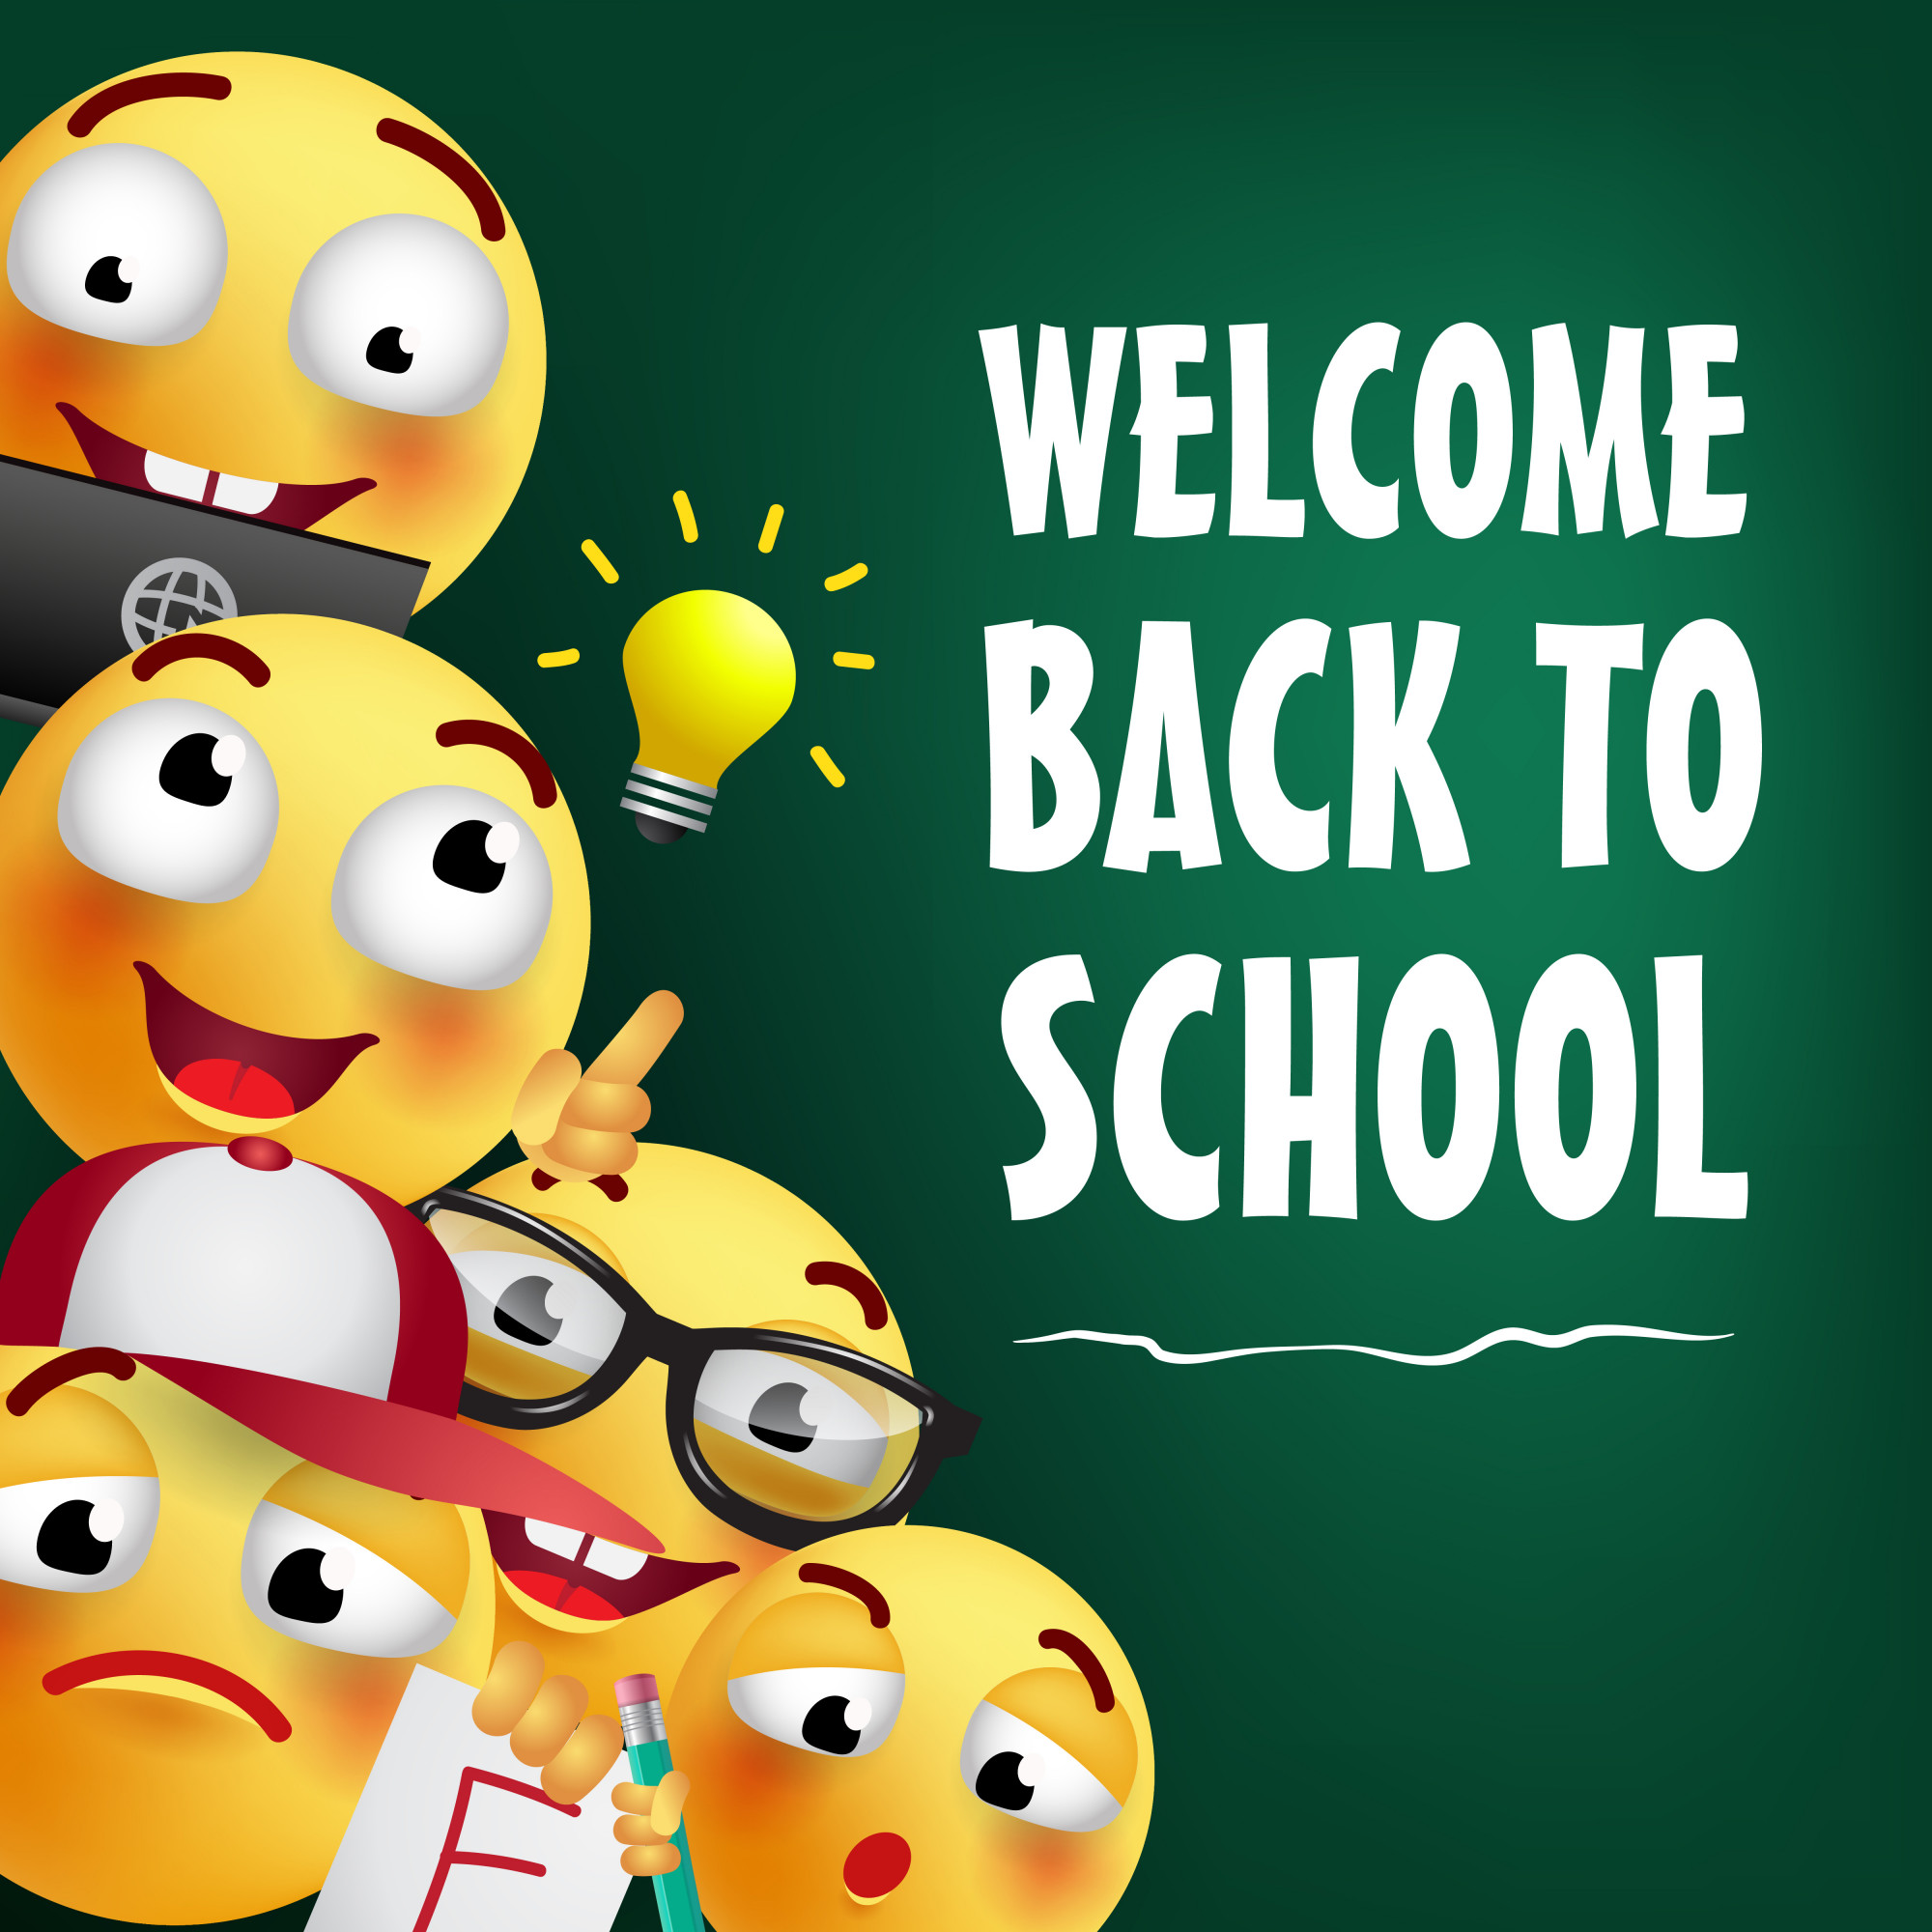 Welcome back to school lettering with happy emojies